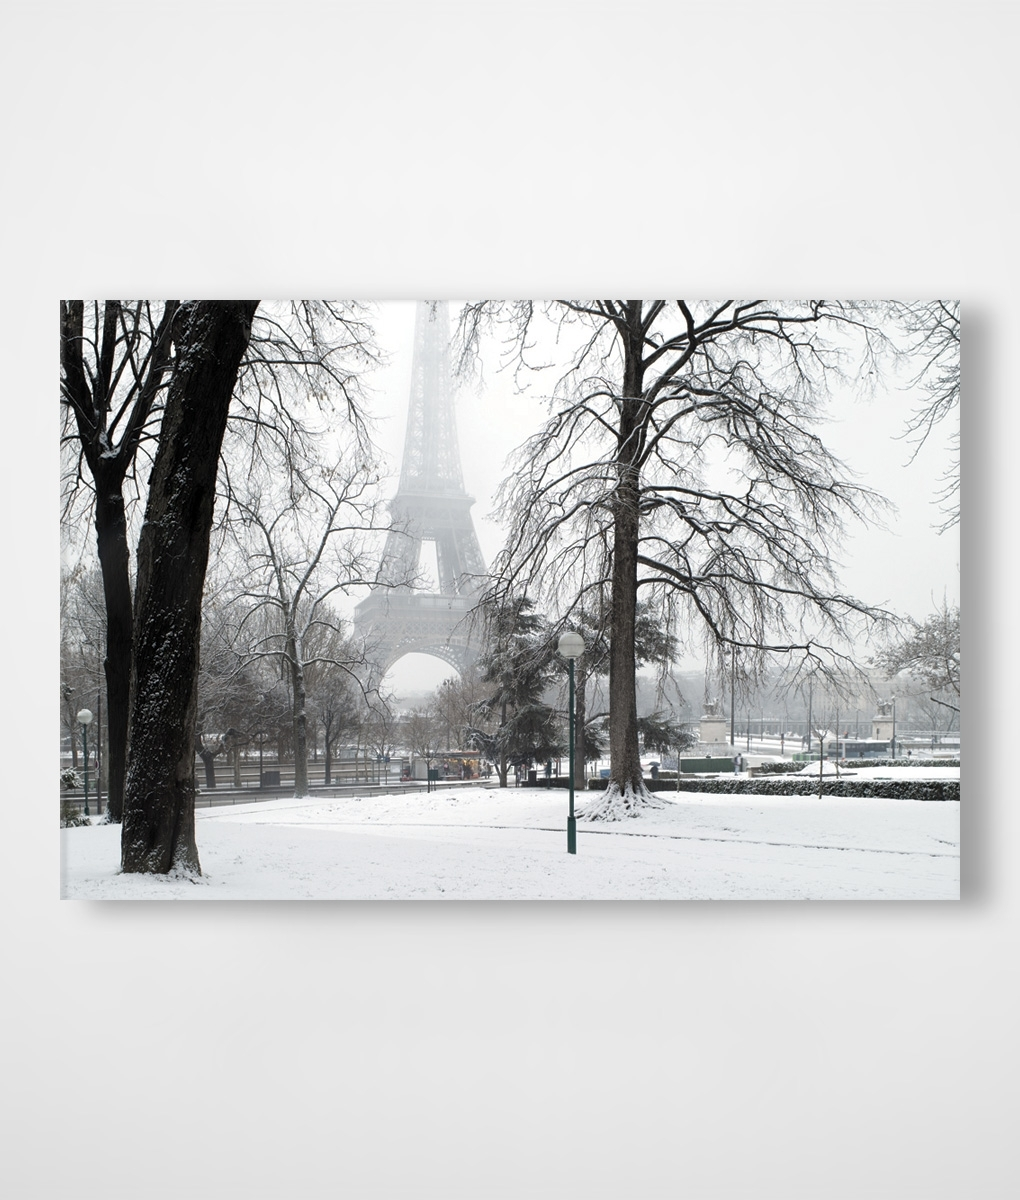 Paris In Winter Snow Canvas Print | Framingland Regarding Most Current Eiffel Tower Canvas Wall Art (View 11 of 15)